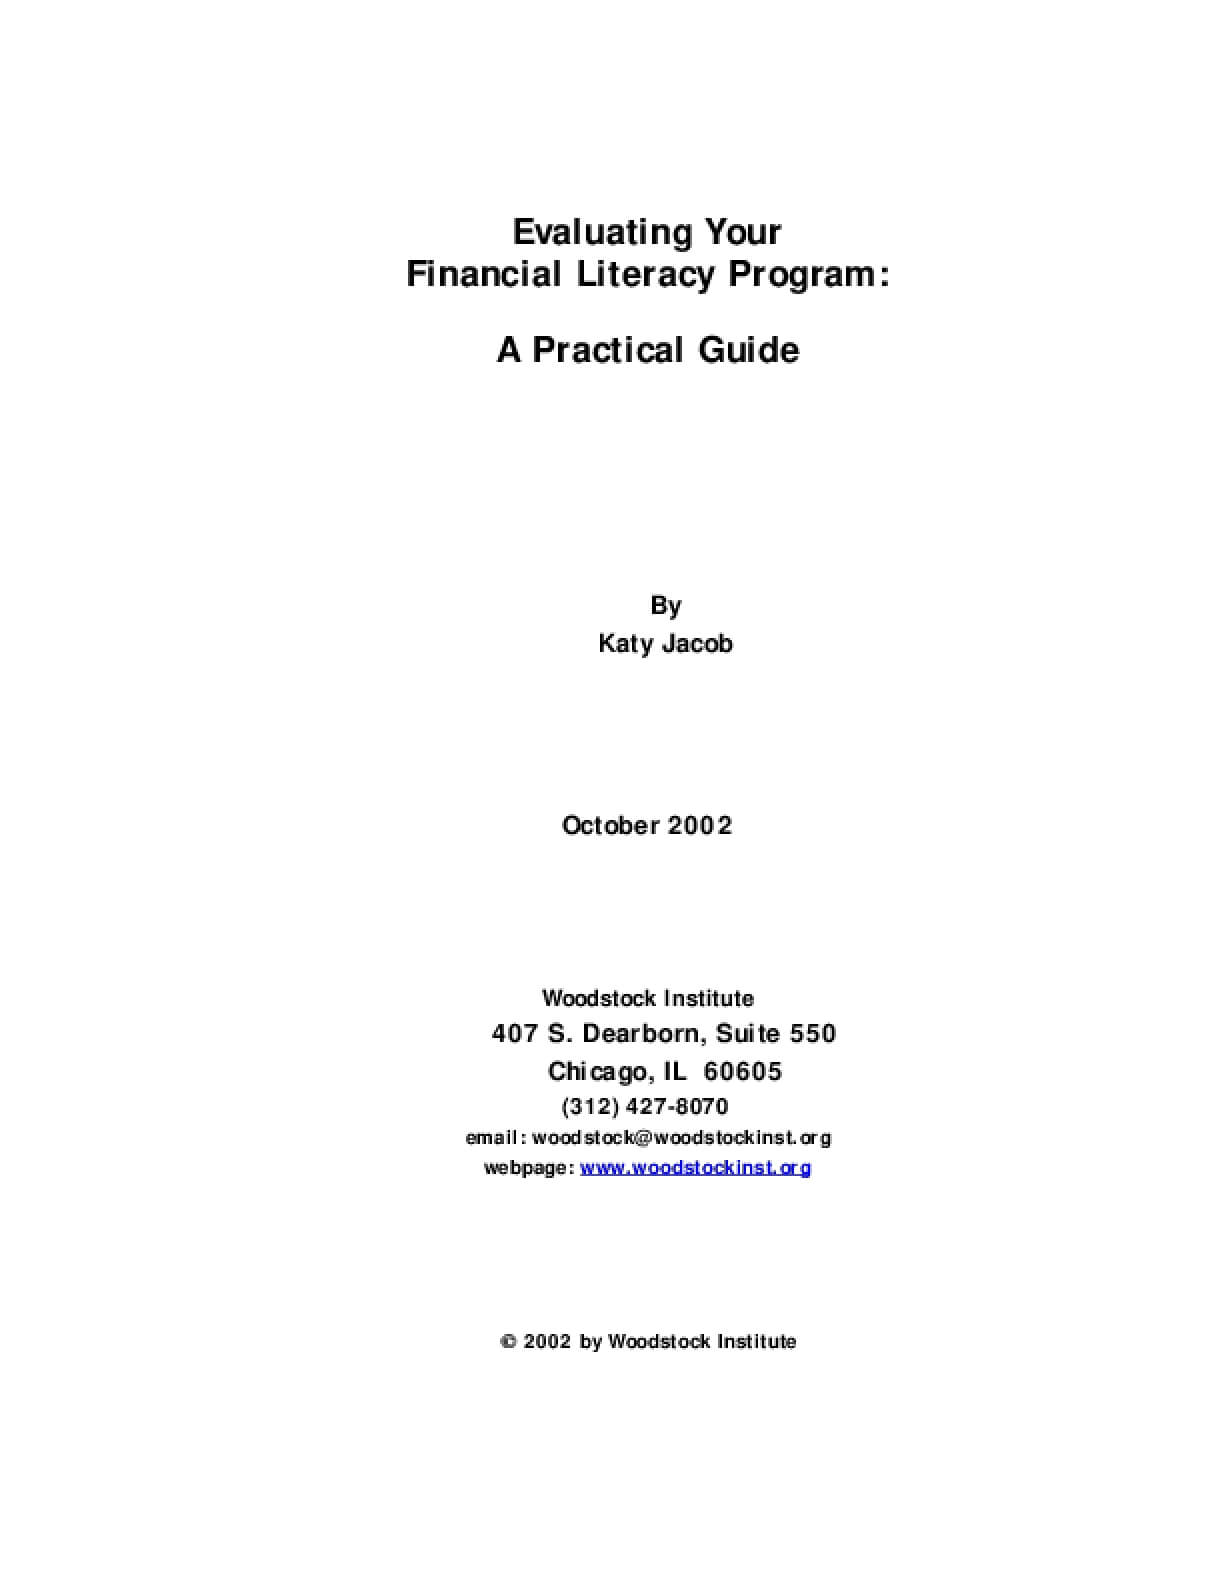 Evaluating Your Financial Literacy Program: A Practical Guide